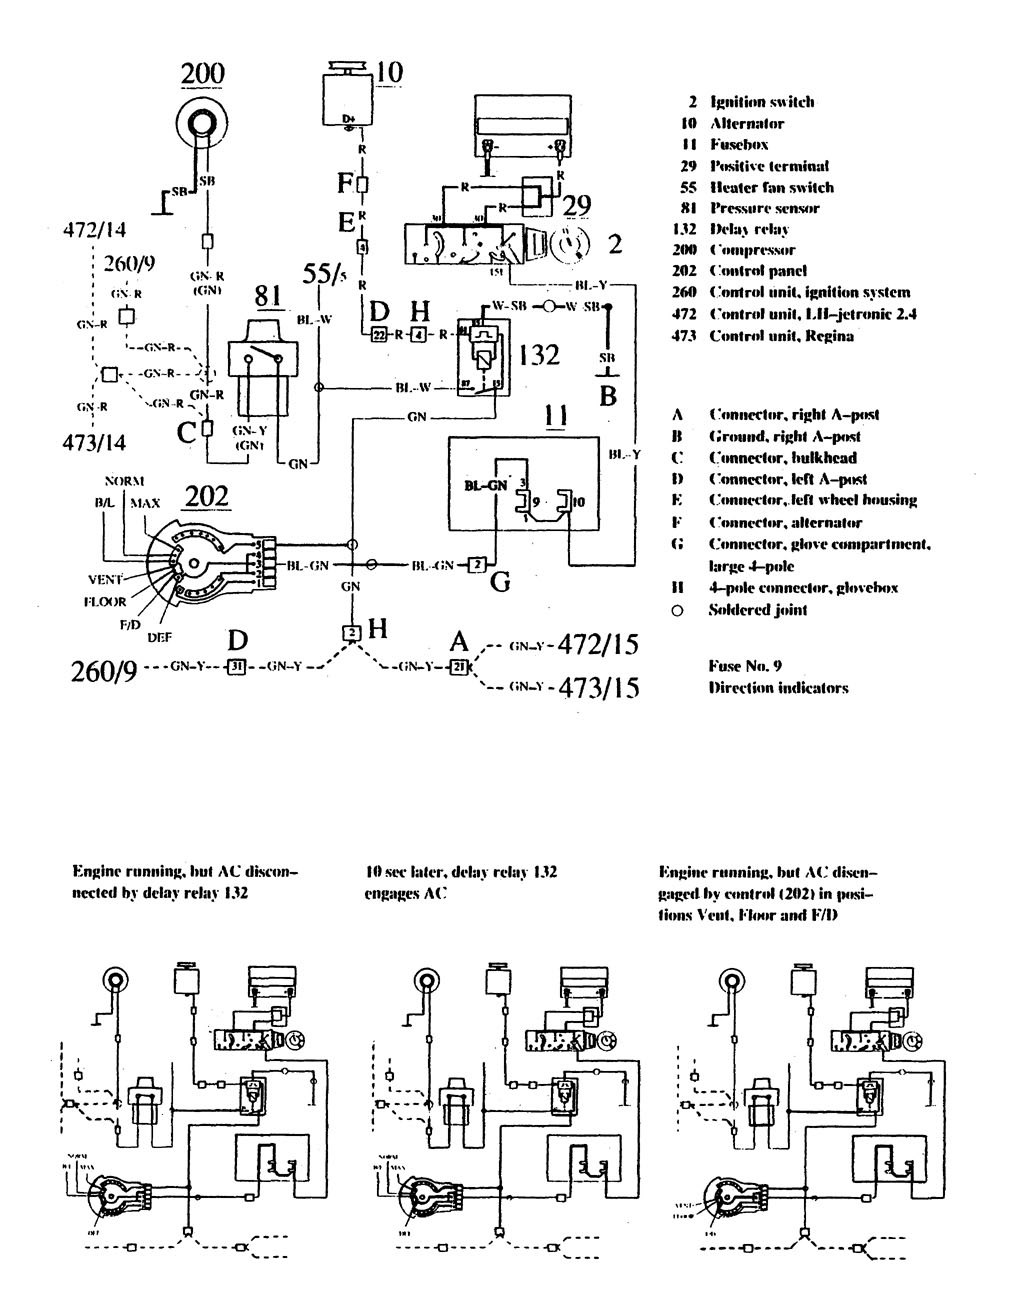 Volvo 740 1990 Wiring Diagrams Hvac Controls on Fuse Box Diagram For 1991 Mercedes Benz 420sel